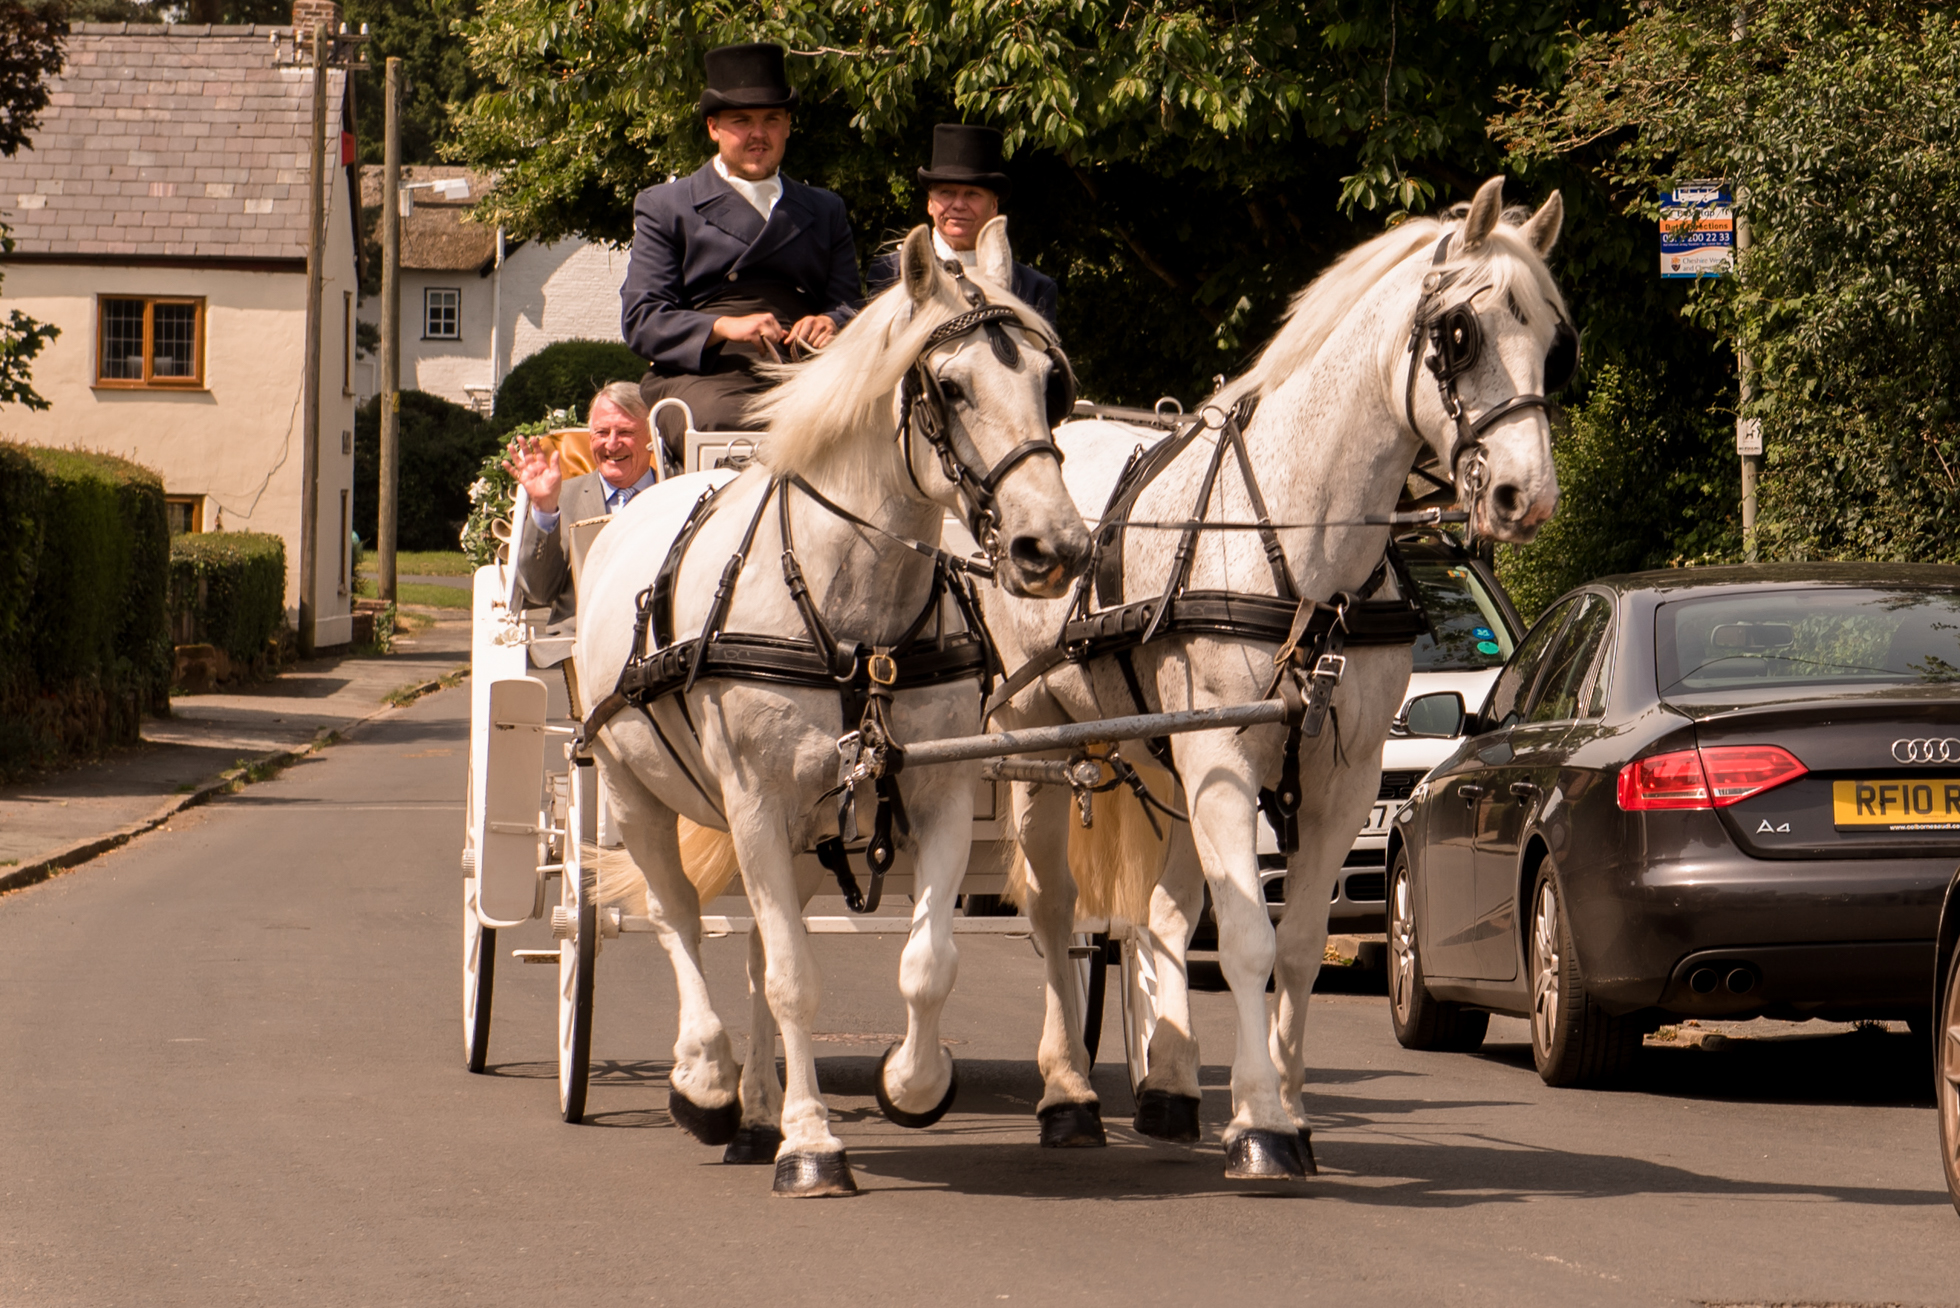 Bridal arival horses and carriage